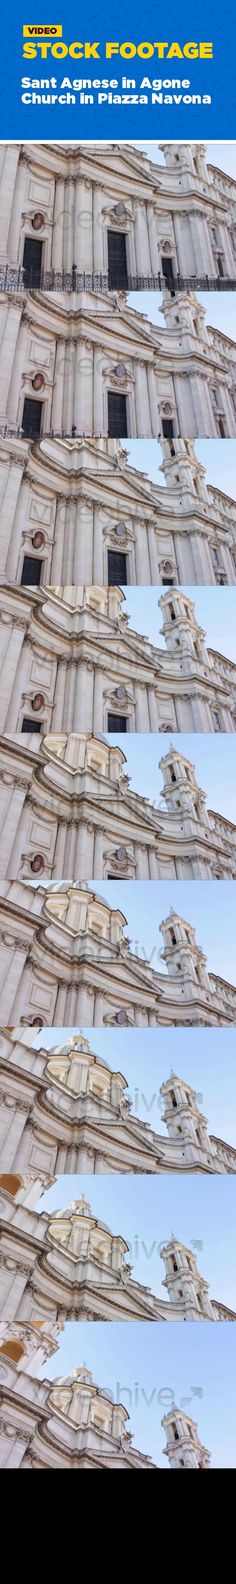 ancient, attraction, building, city, europe, history, italian, landmark, marble, monument, roma, roman, square, tourism, travel The biggest Baroque cathedral on Piazza Navona in Rome, Italy. Filmed on a quiet autumn afternoon. Good video on topics of architecture, traveling and history.